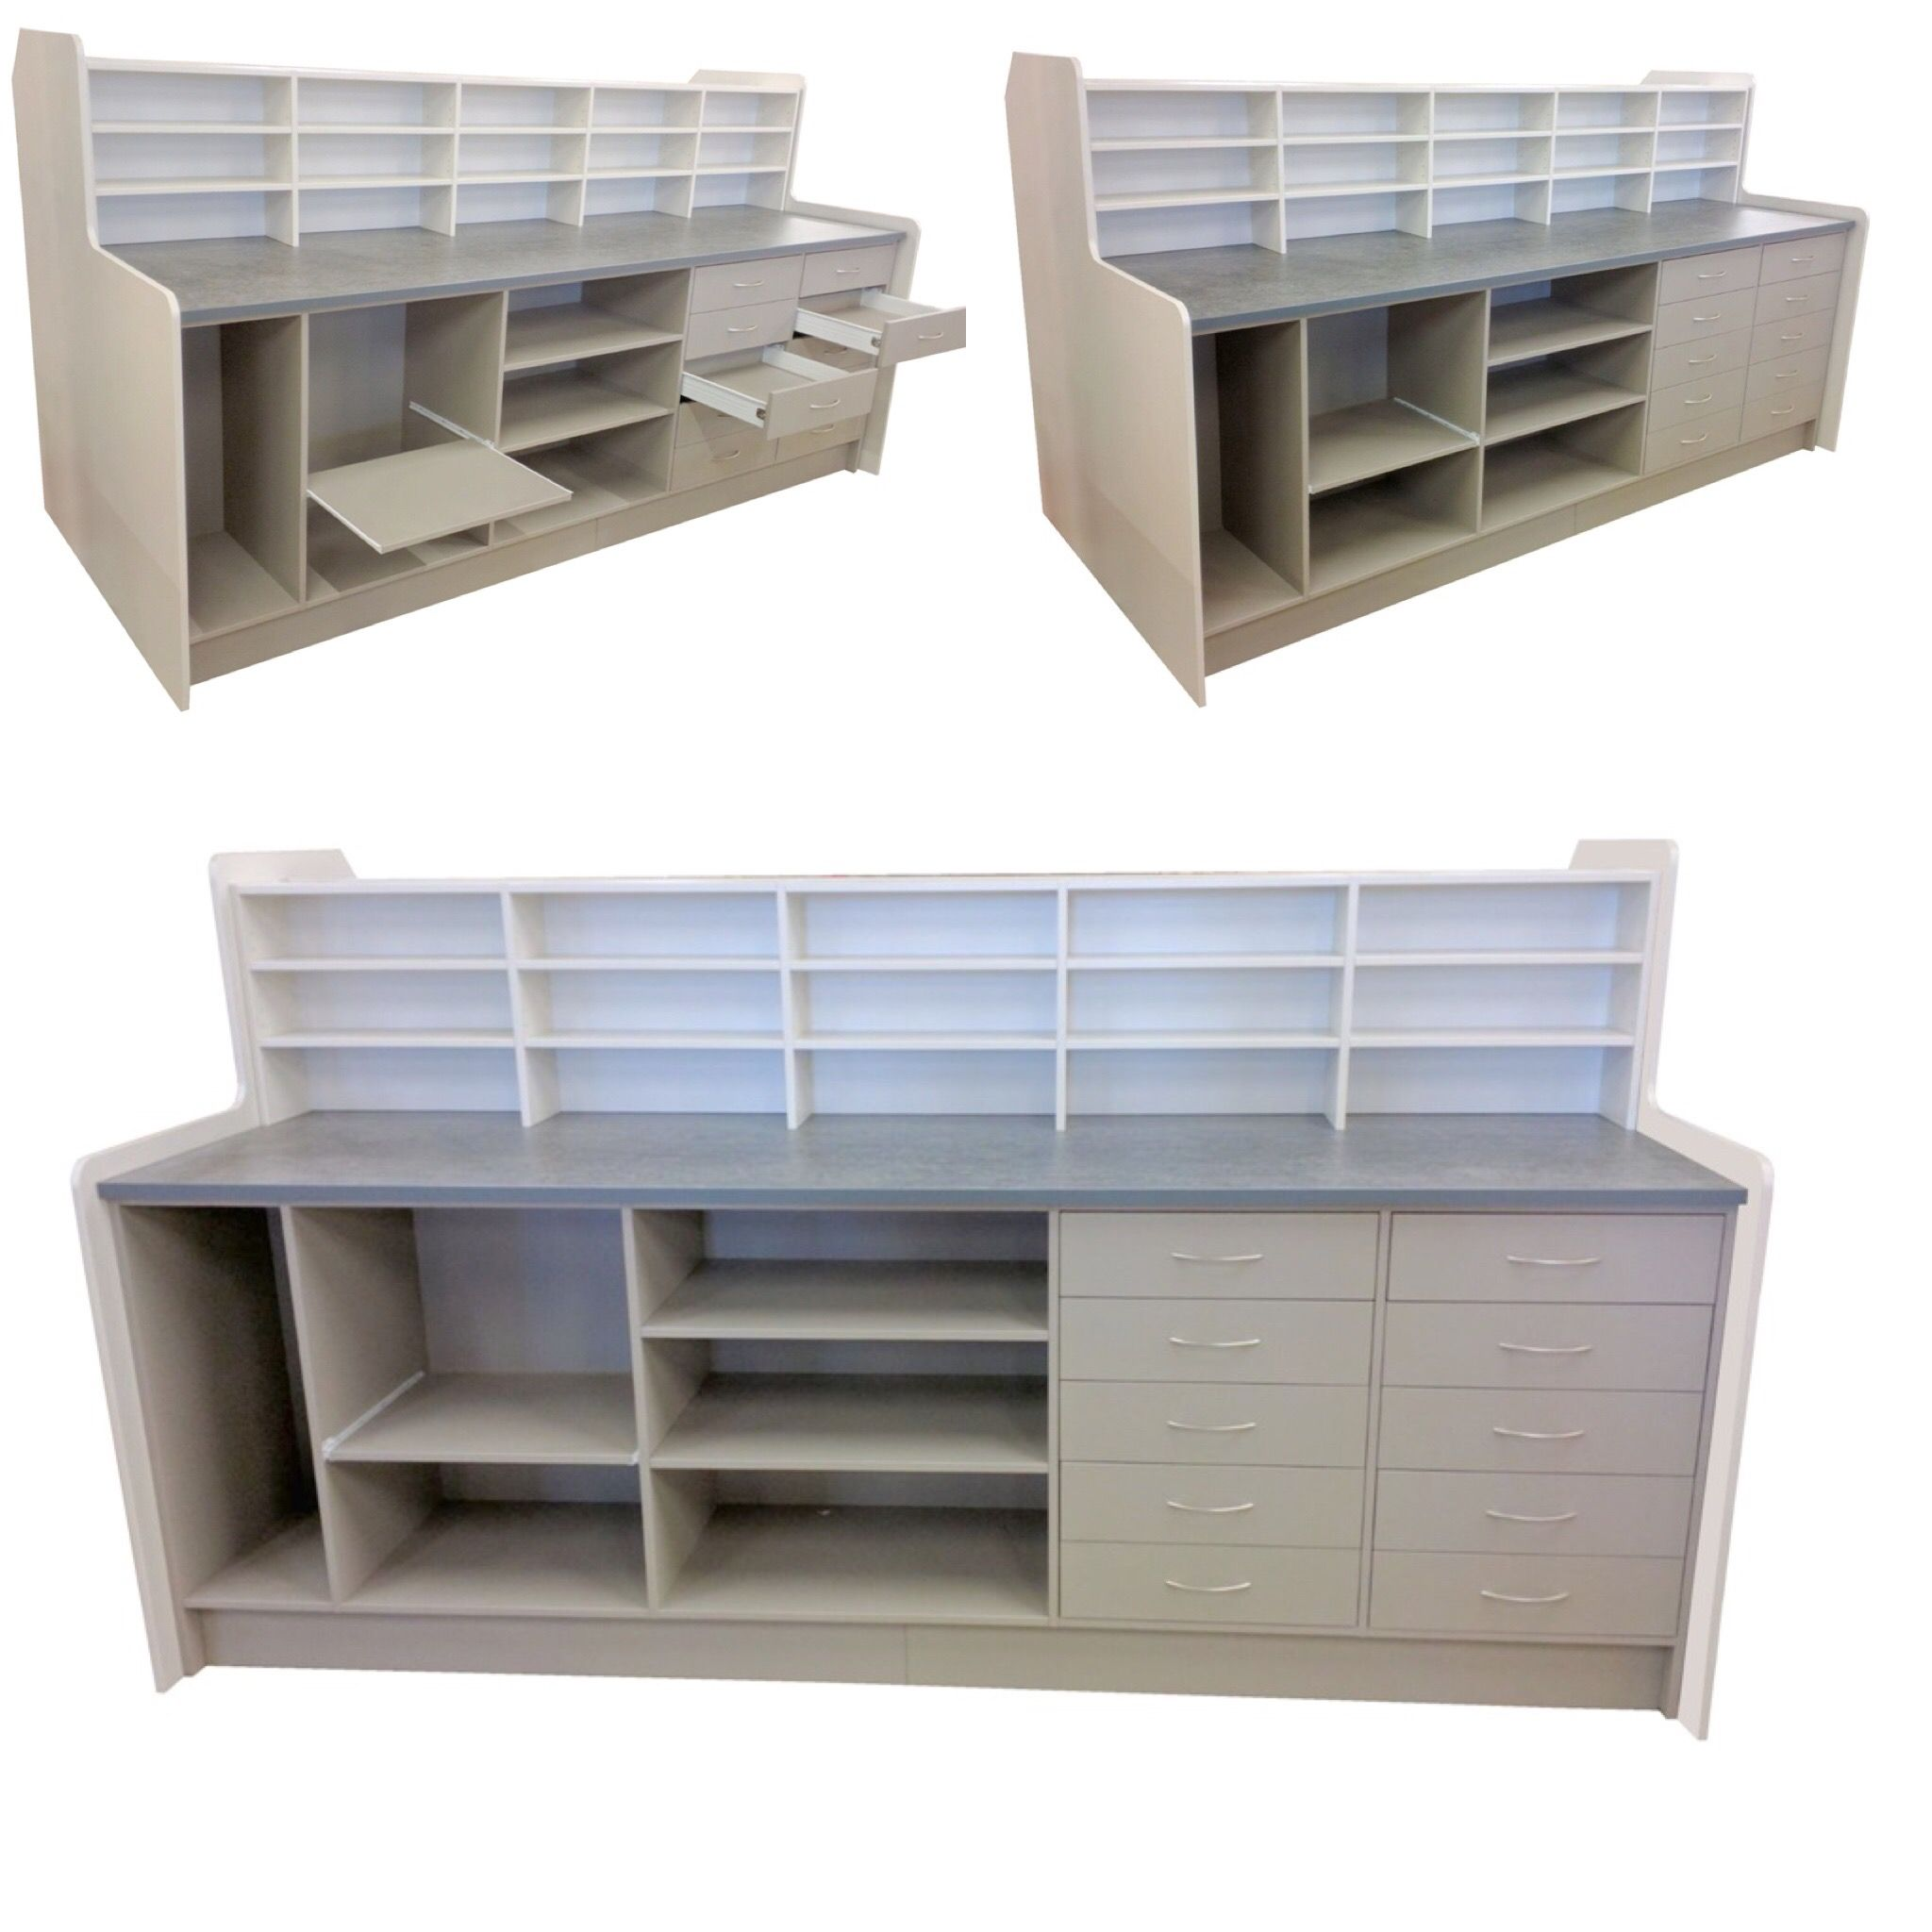 Pharmacy Store Ideas Pharmacy Dispensary Counters Pharmacy Counter With Extending Draws And Cupboard Di Pharmacy Store Store Design Interior Pharmacy Design